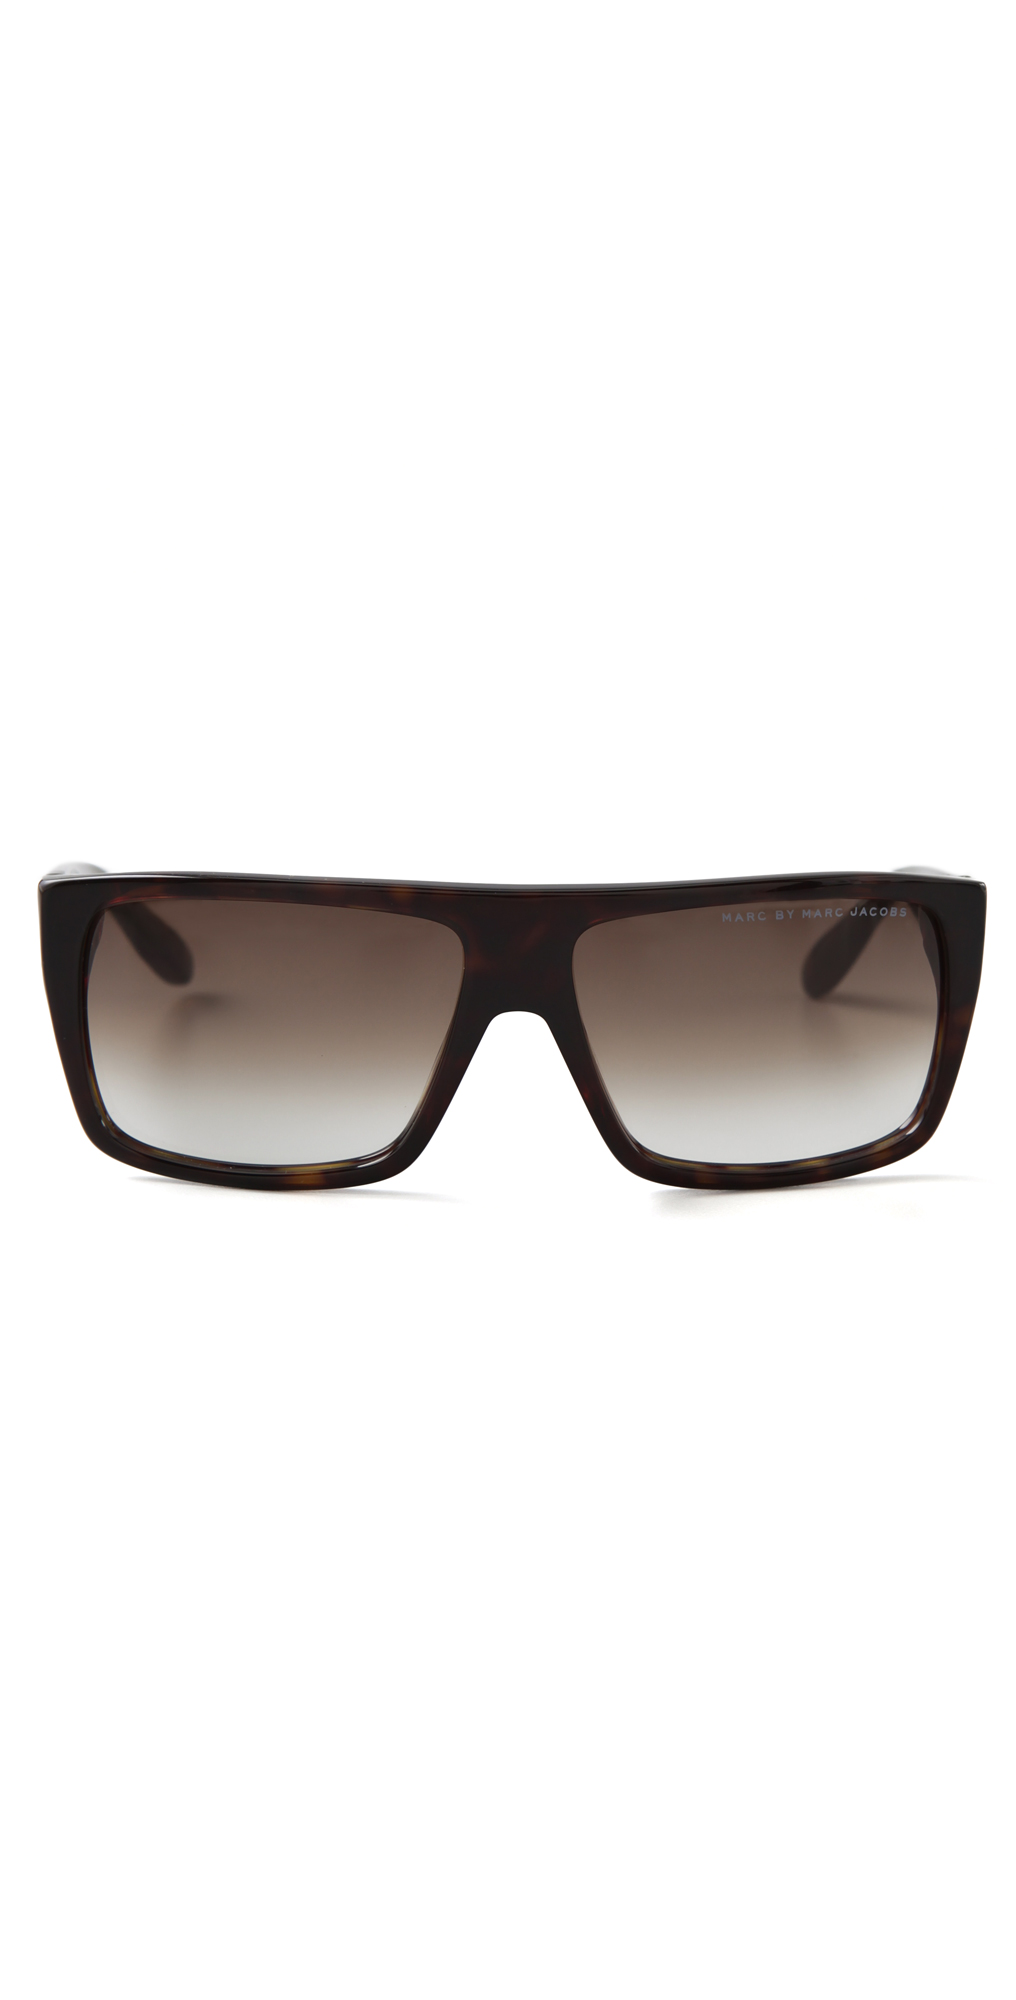 2cd30f7c0f5 Marc by Marc Jacobs Side Stripe Sunglasses